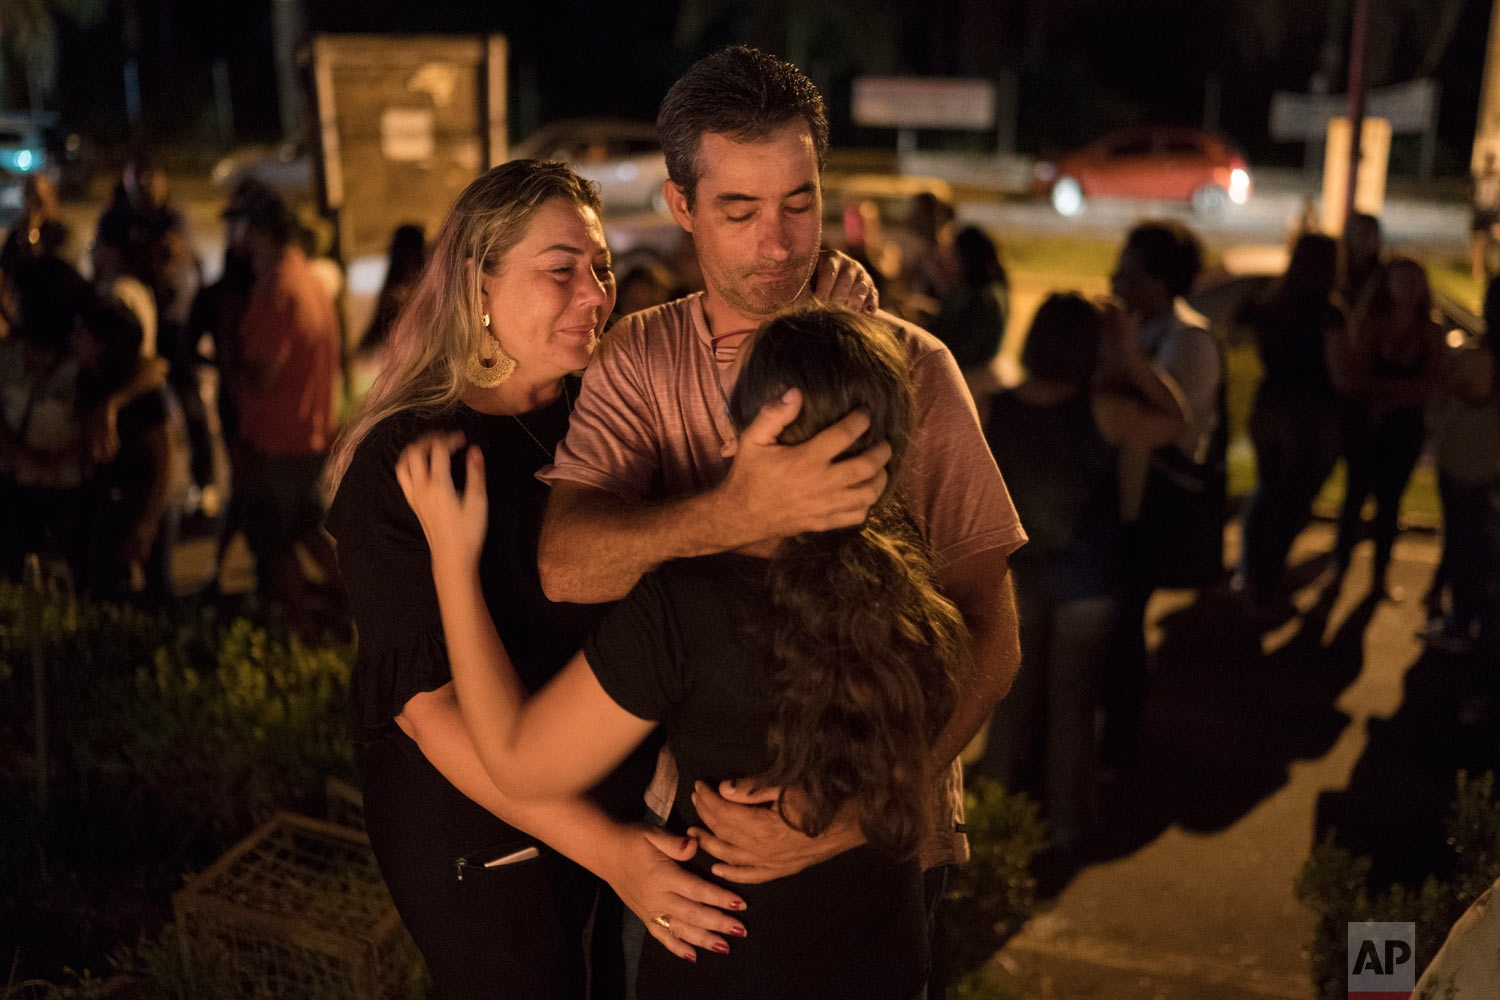 A family embraces during a vigil for the victims of the collapsed mining dam in Brumadinho, Brazil, Jan. 29, 2019. (AP Photo/Leo Correa)